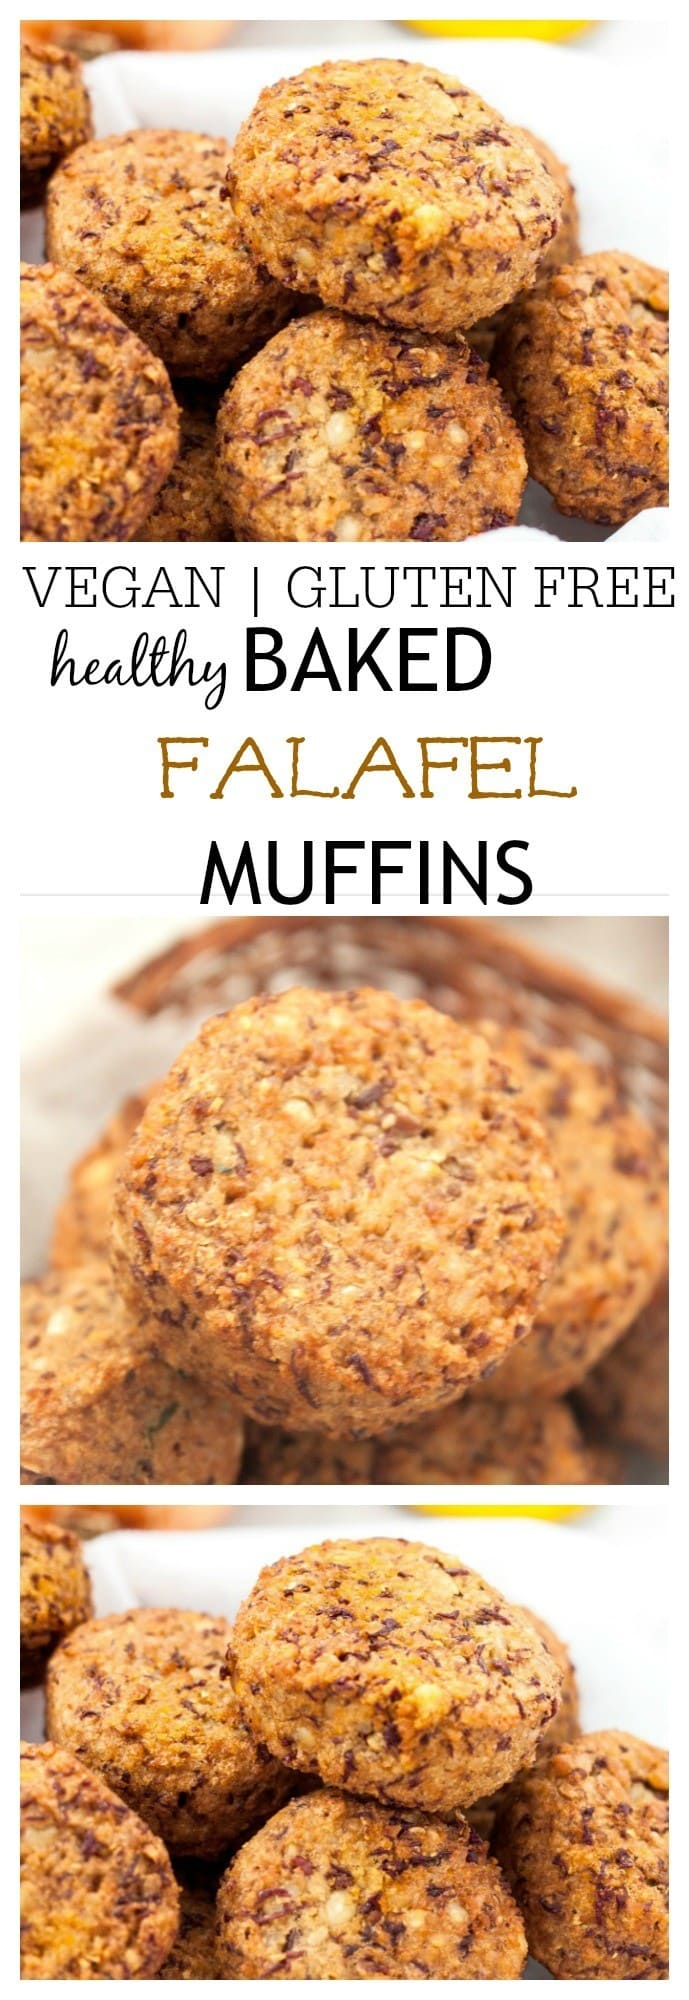 Healthy Baked Falafel Muffins- These crispy, high protein baked falafel muffins are completely vegan and gluten free! Naturally low in fat, these healthy savoury bites are low in fat and the perfect snack or meal addition! @thebigmansworld - thebigmansworld.com